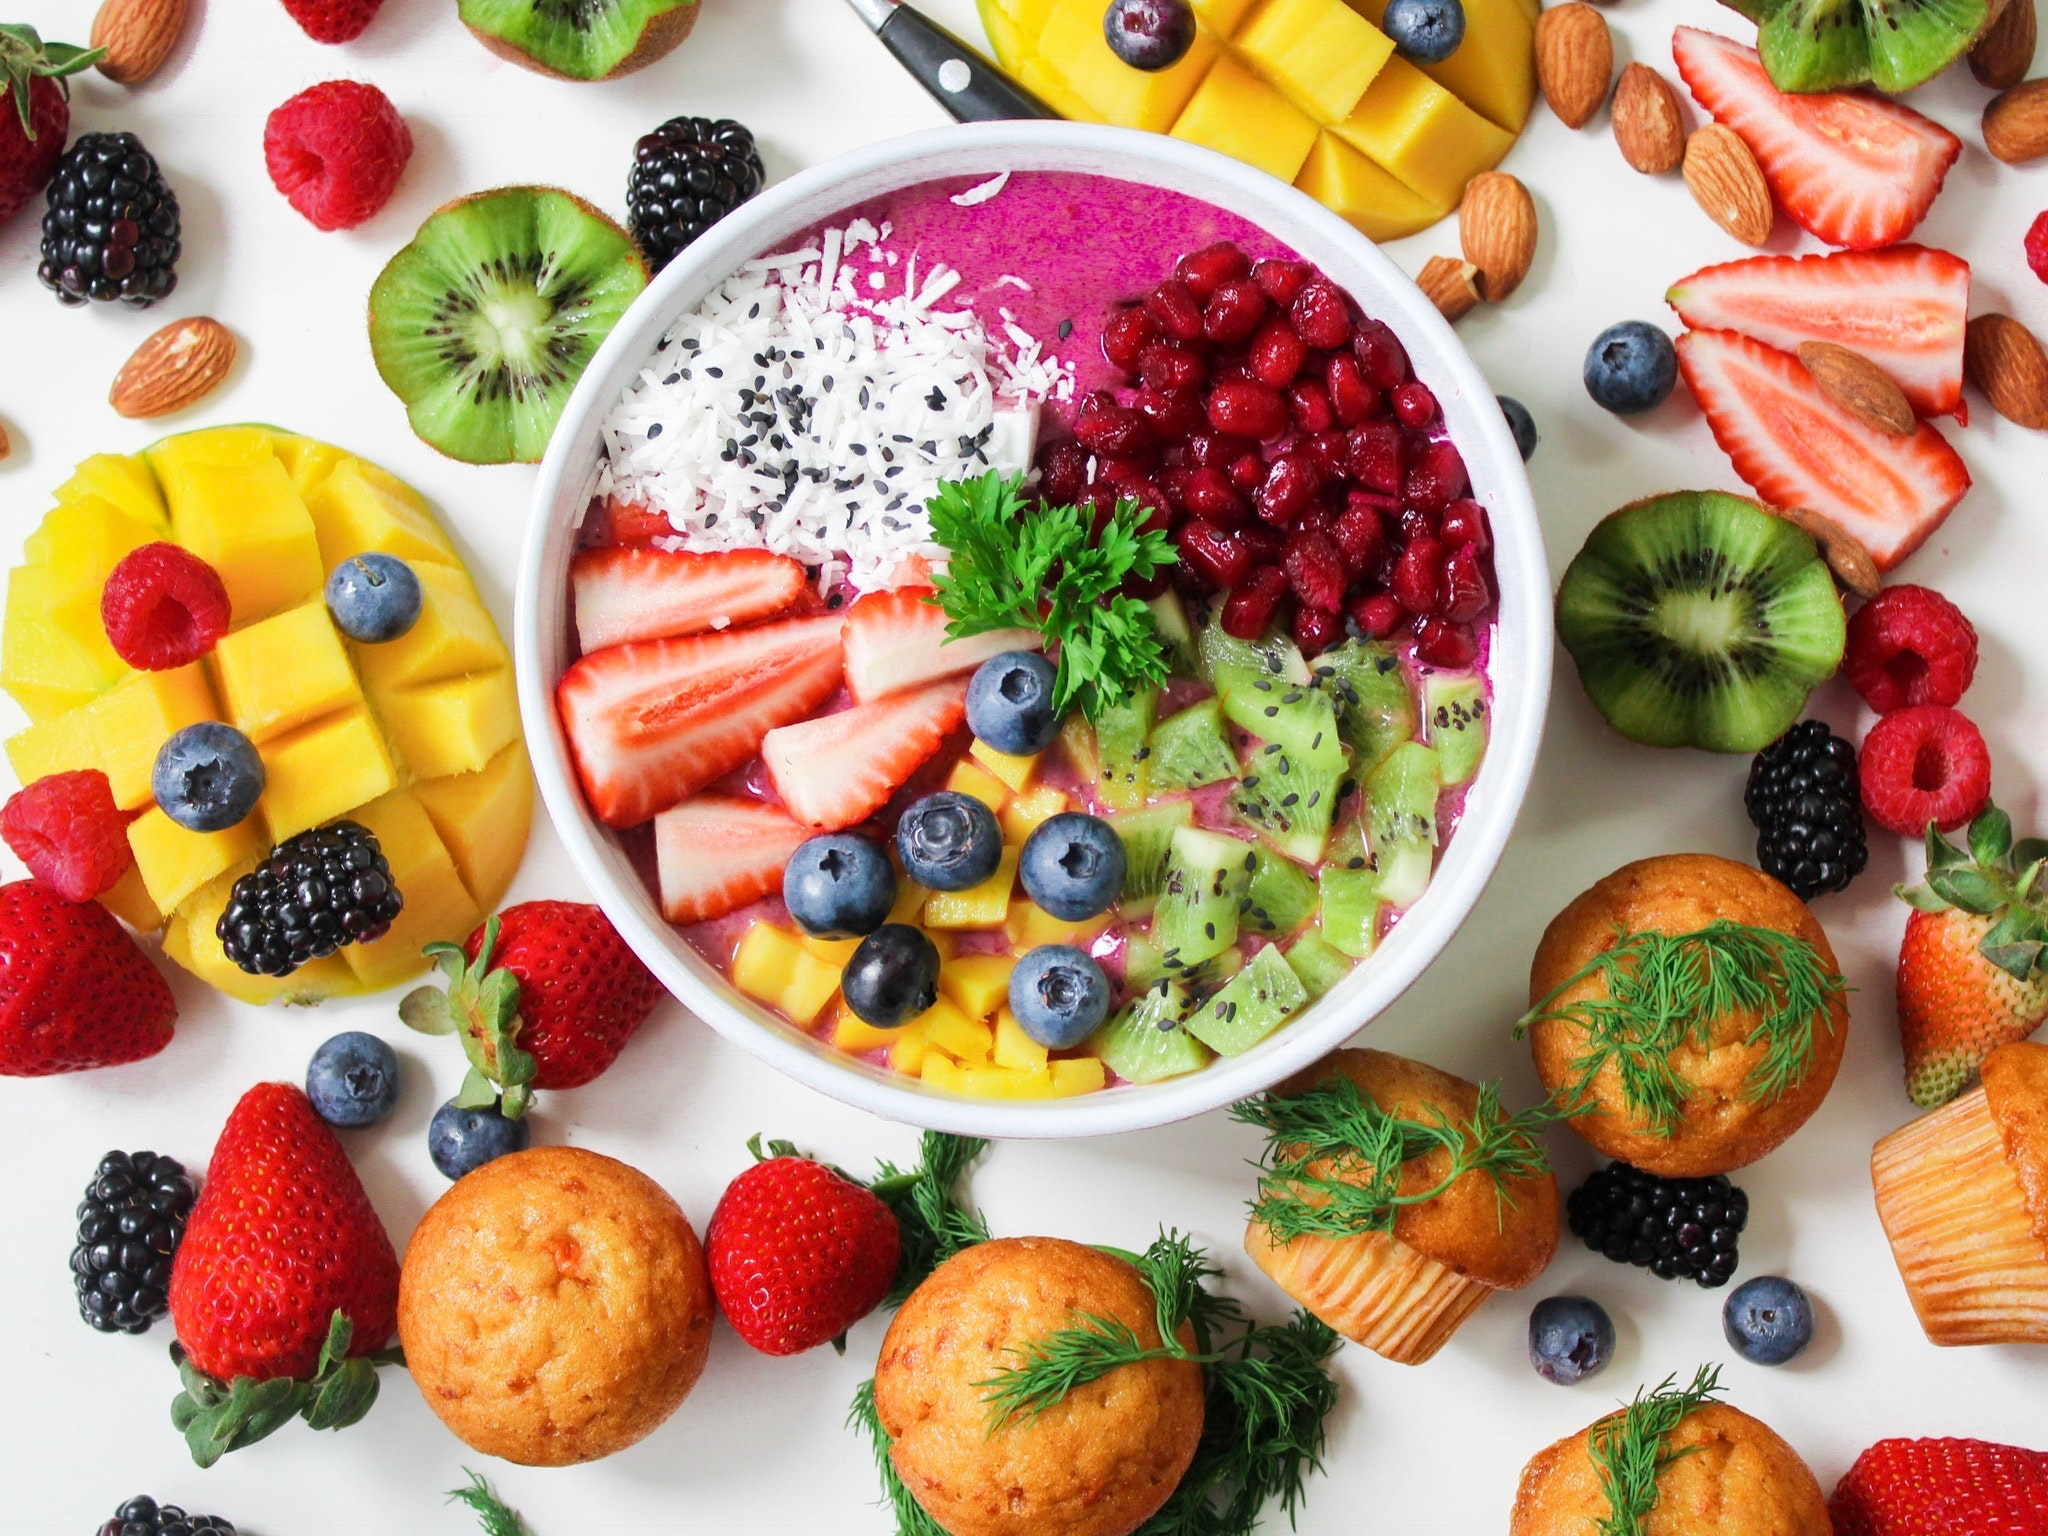 Norway Among The Healthiest Nations - Norway Today